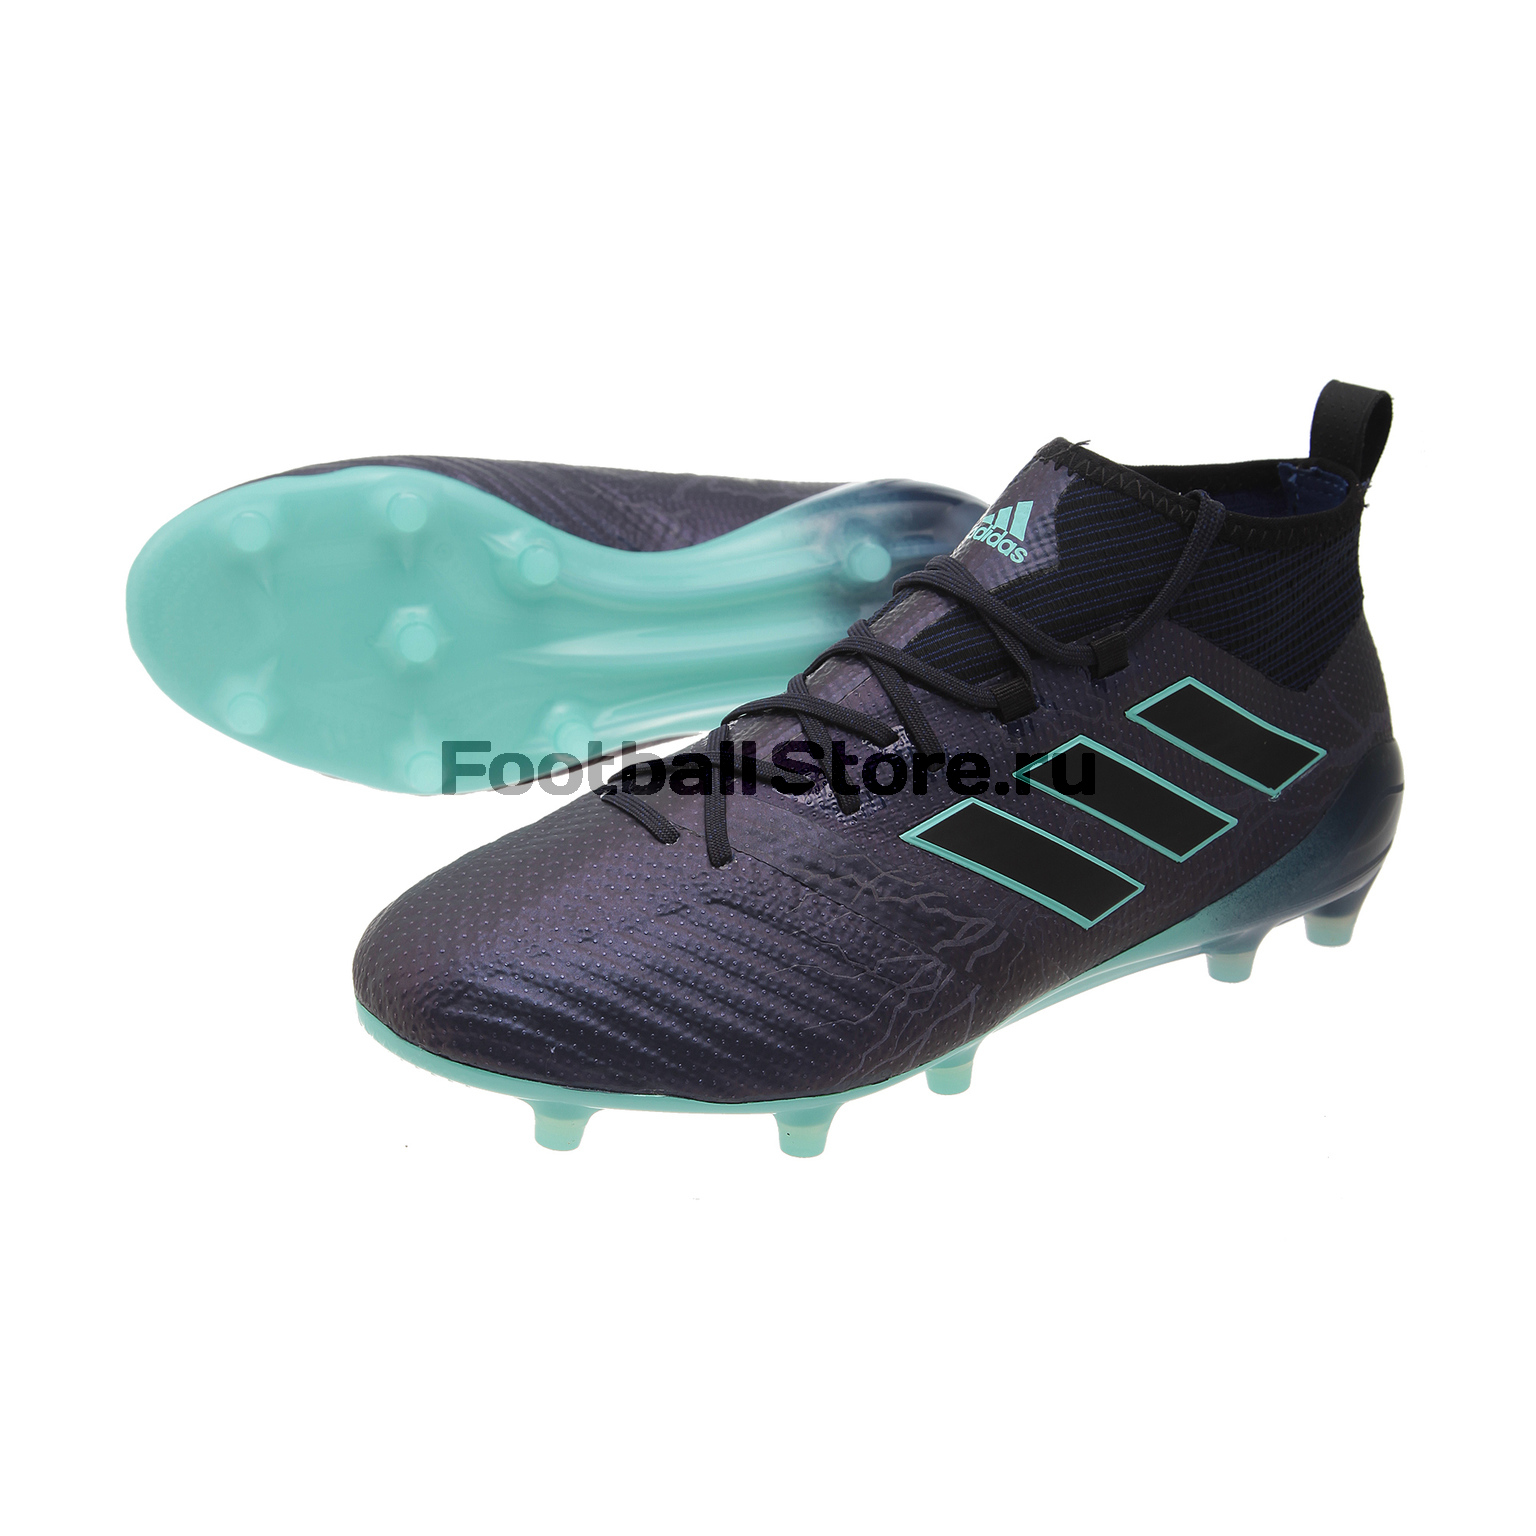 Бутсы Adidas ACE 17.1 FG BY2459 детские бутсы nike бутсы nike jr phantom 3 elite df fg ah7292 081